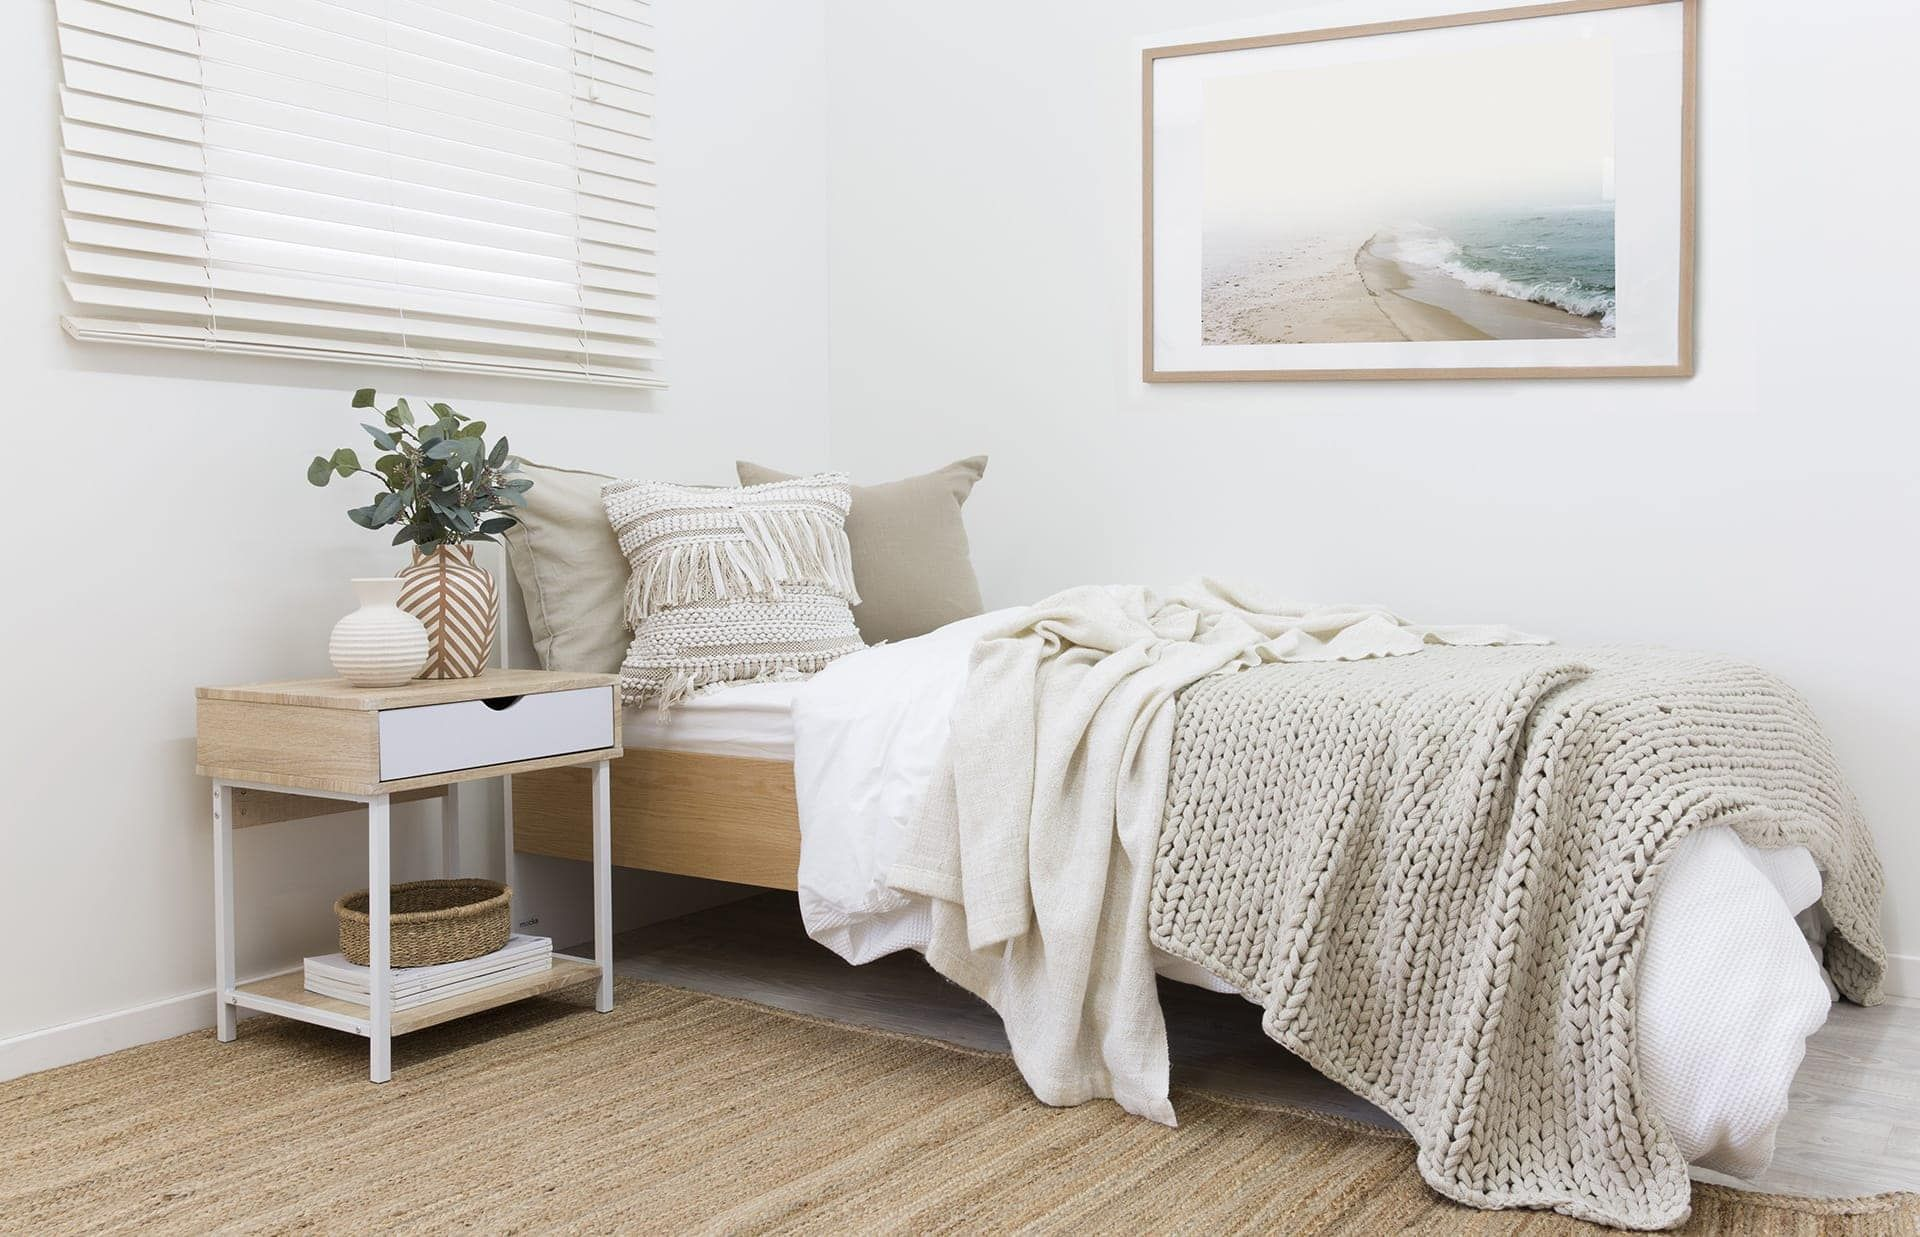 Guest Bedroom Decorating Ideas Coastal Bohemian Kids Bedroom With Single Kids Bed And Boho Cushion Single Bedroom Bedroom Table Bedroom Bedside Table